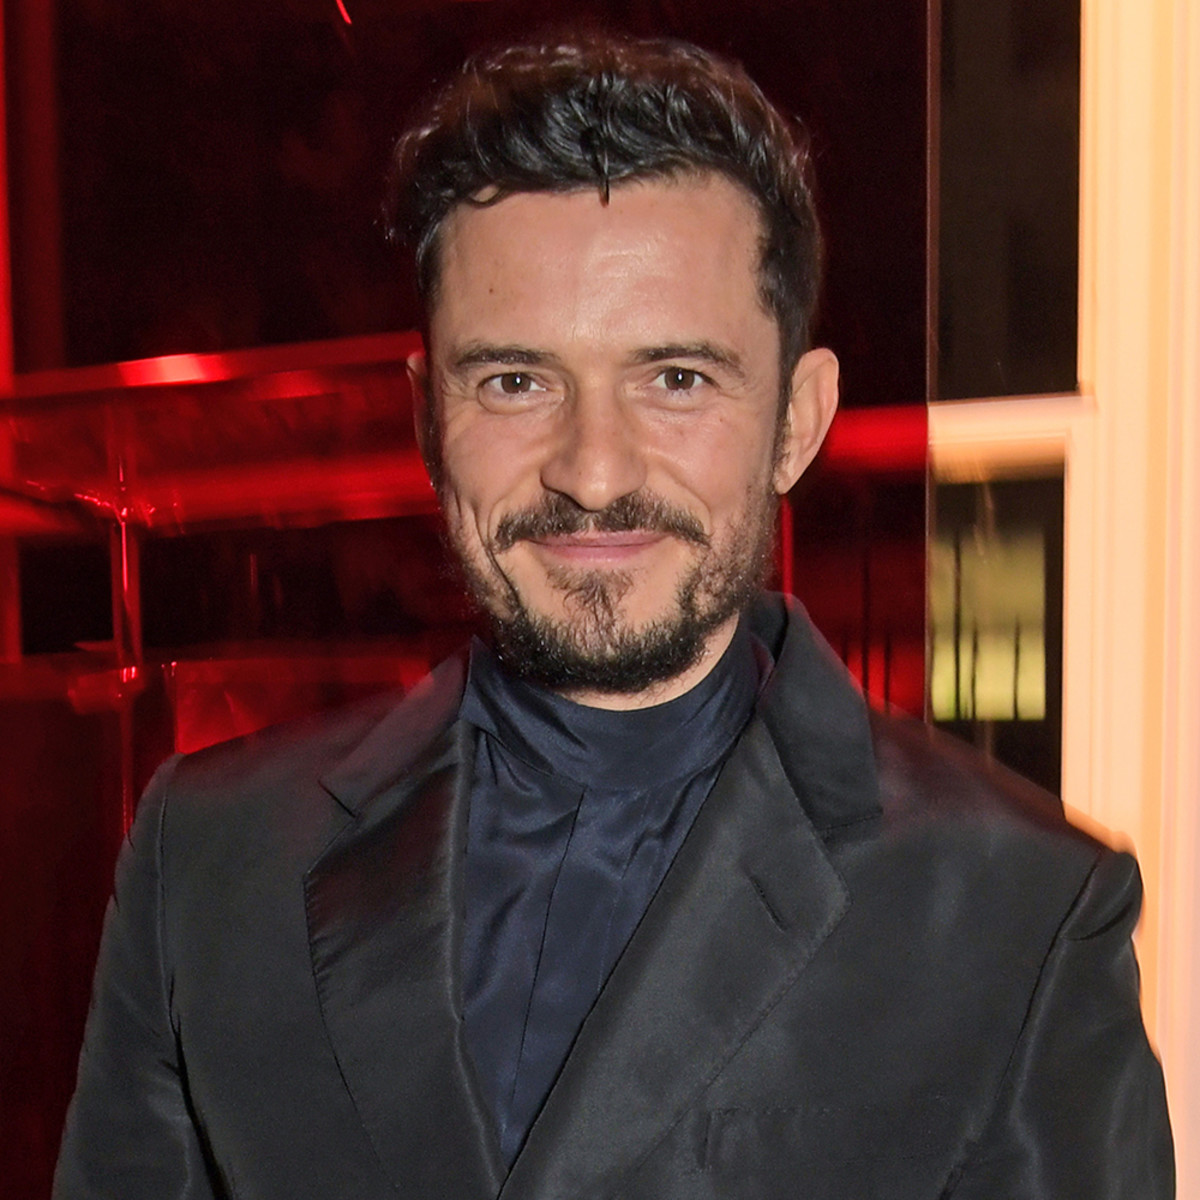 Orlando Bloom - Age, Family & Facts - Biography